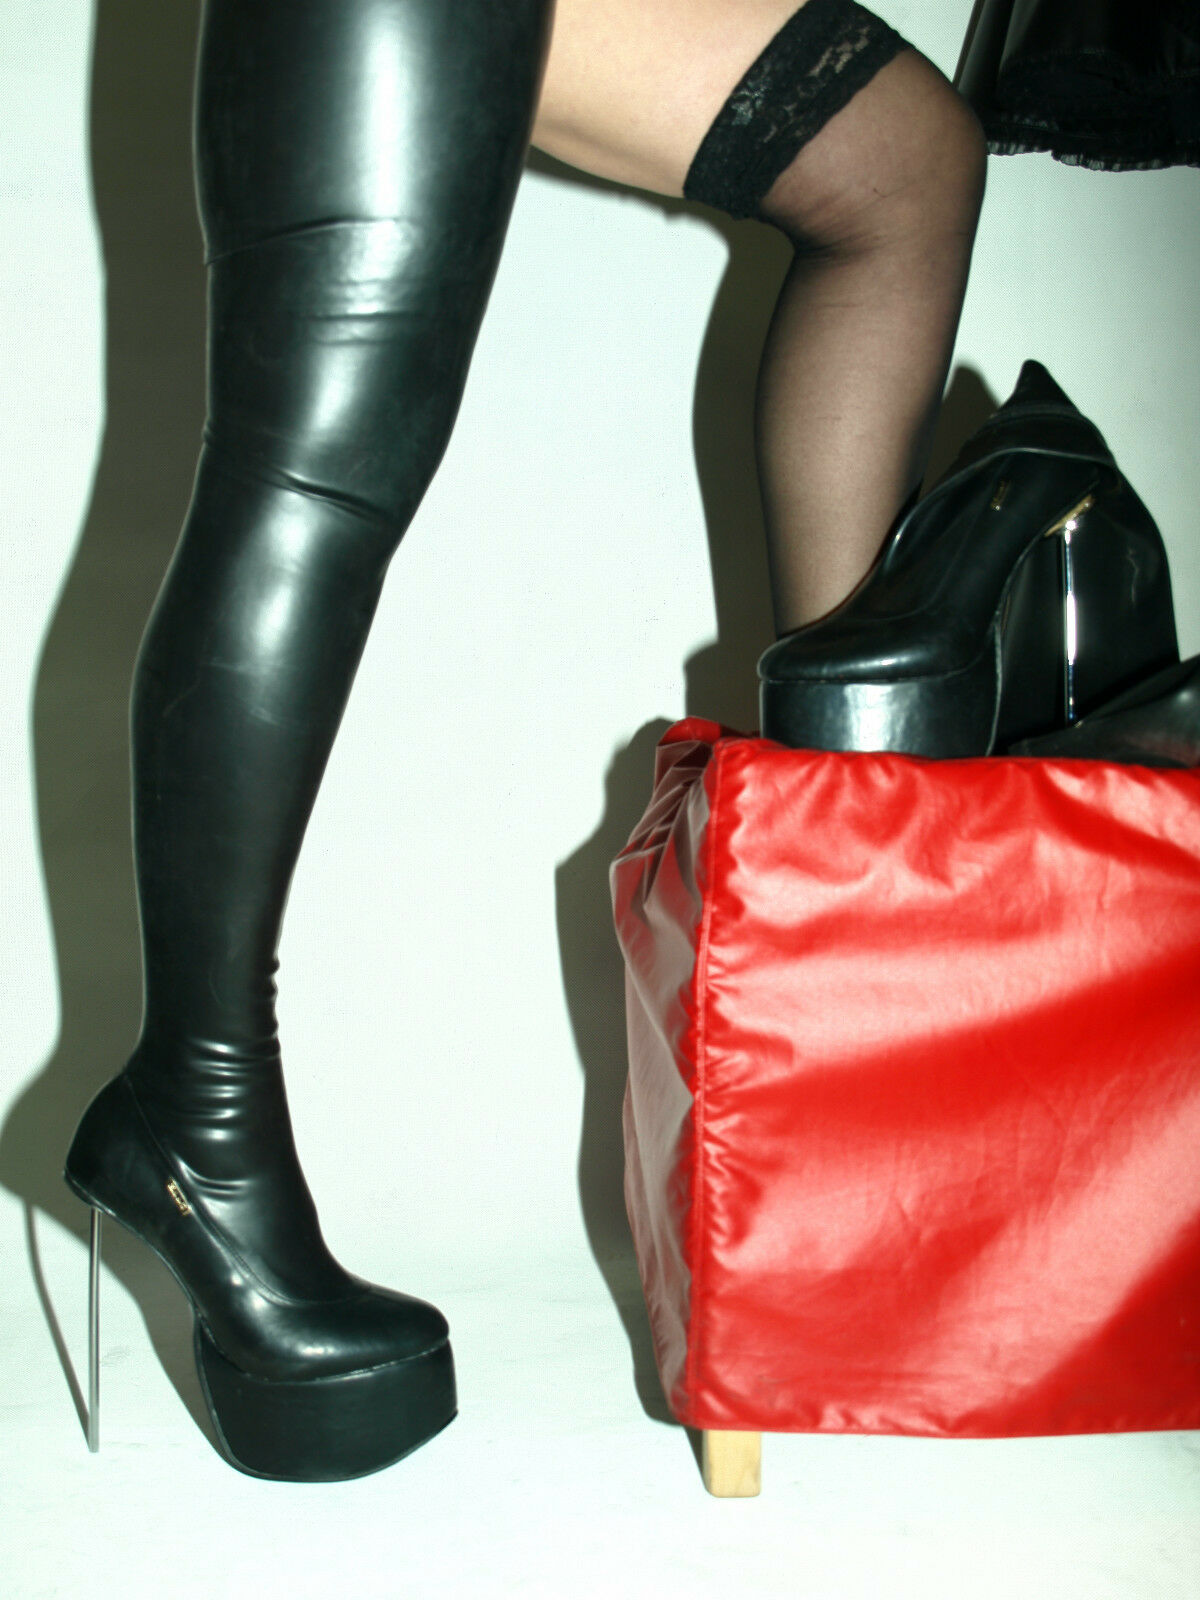 PROMOTION    LATEX RUBBER FETISH 8CM BOOTS SIZE 4-12 PLATFORM 8CM FETISH HEELS 20CM POLAND a84300